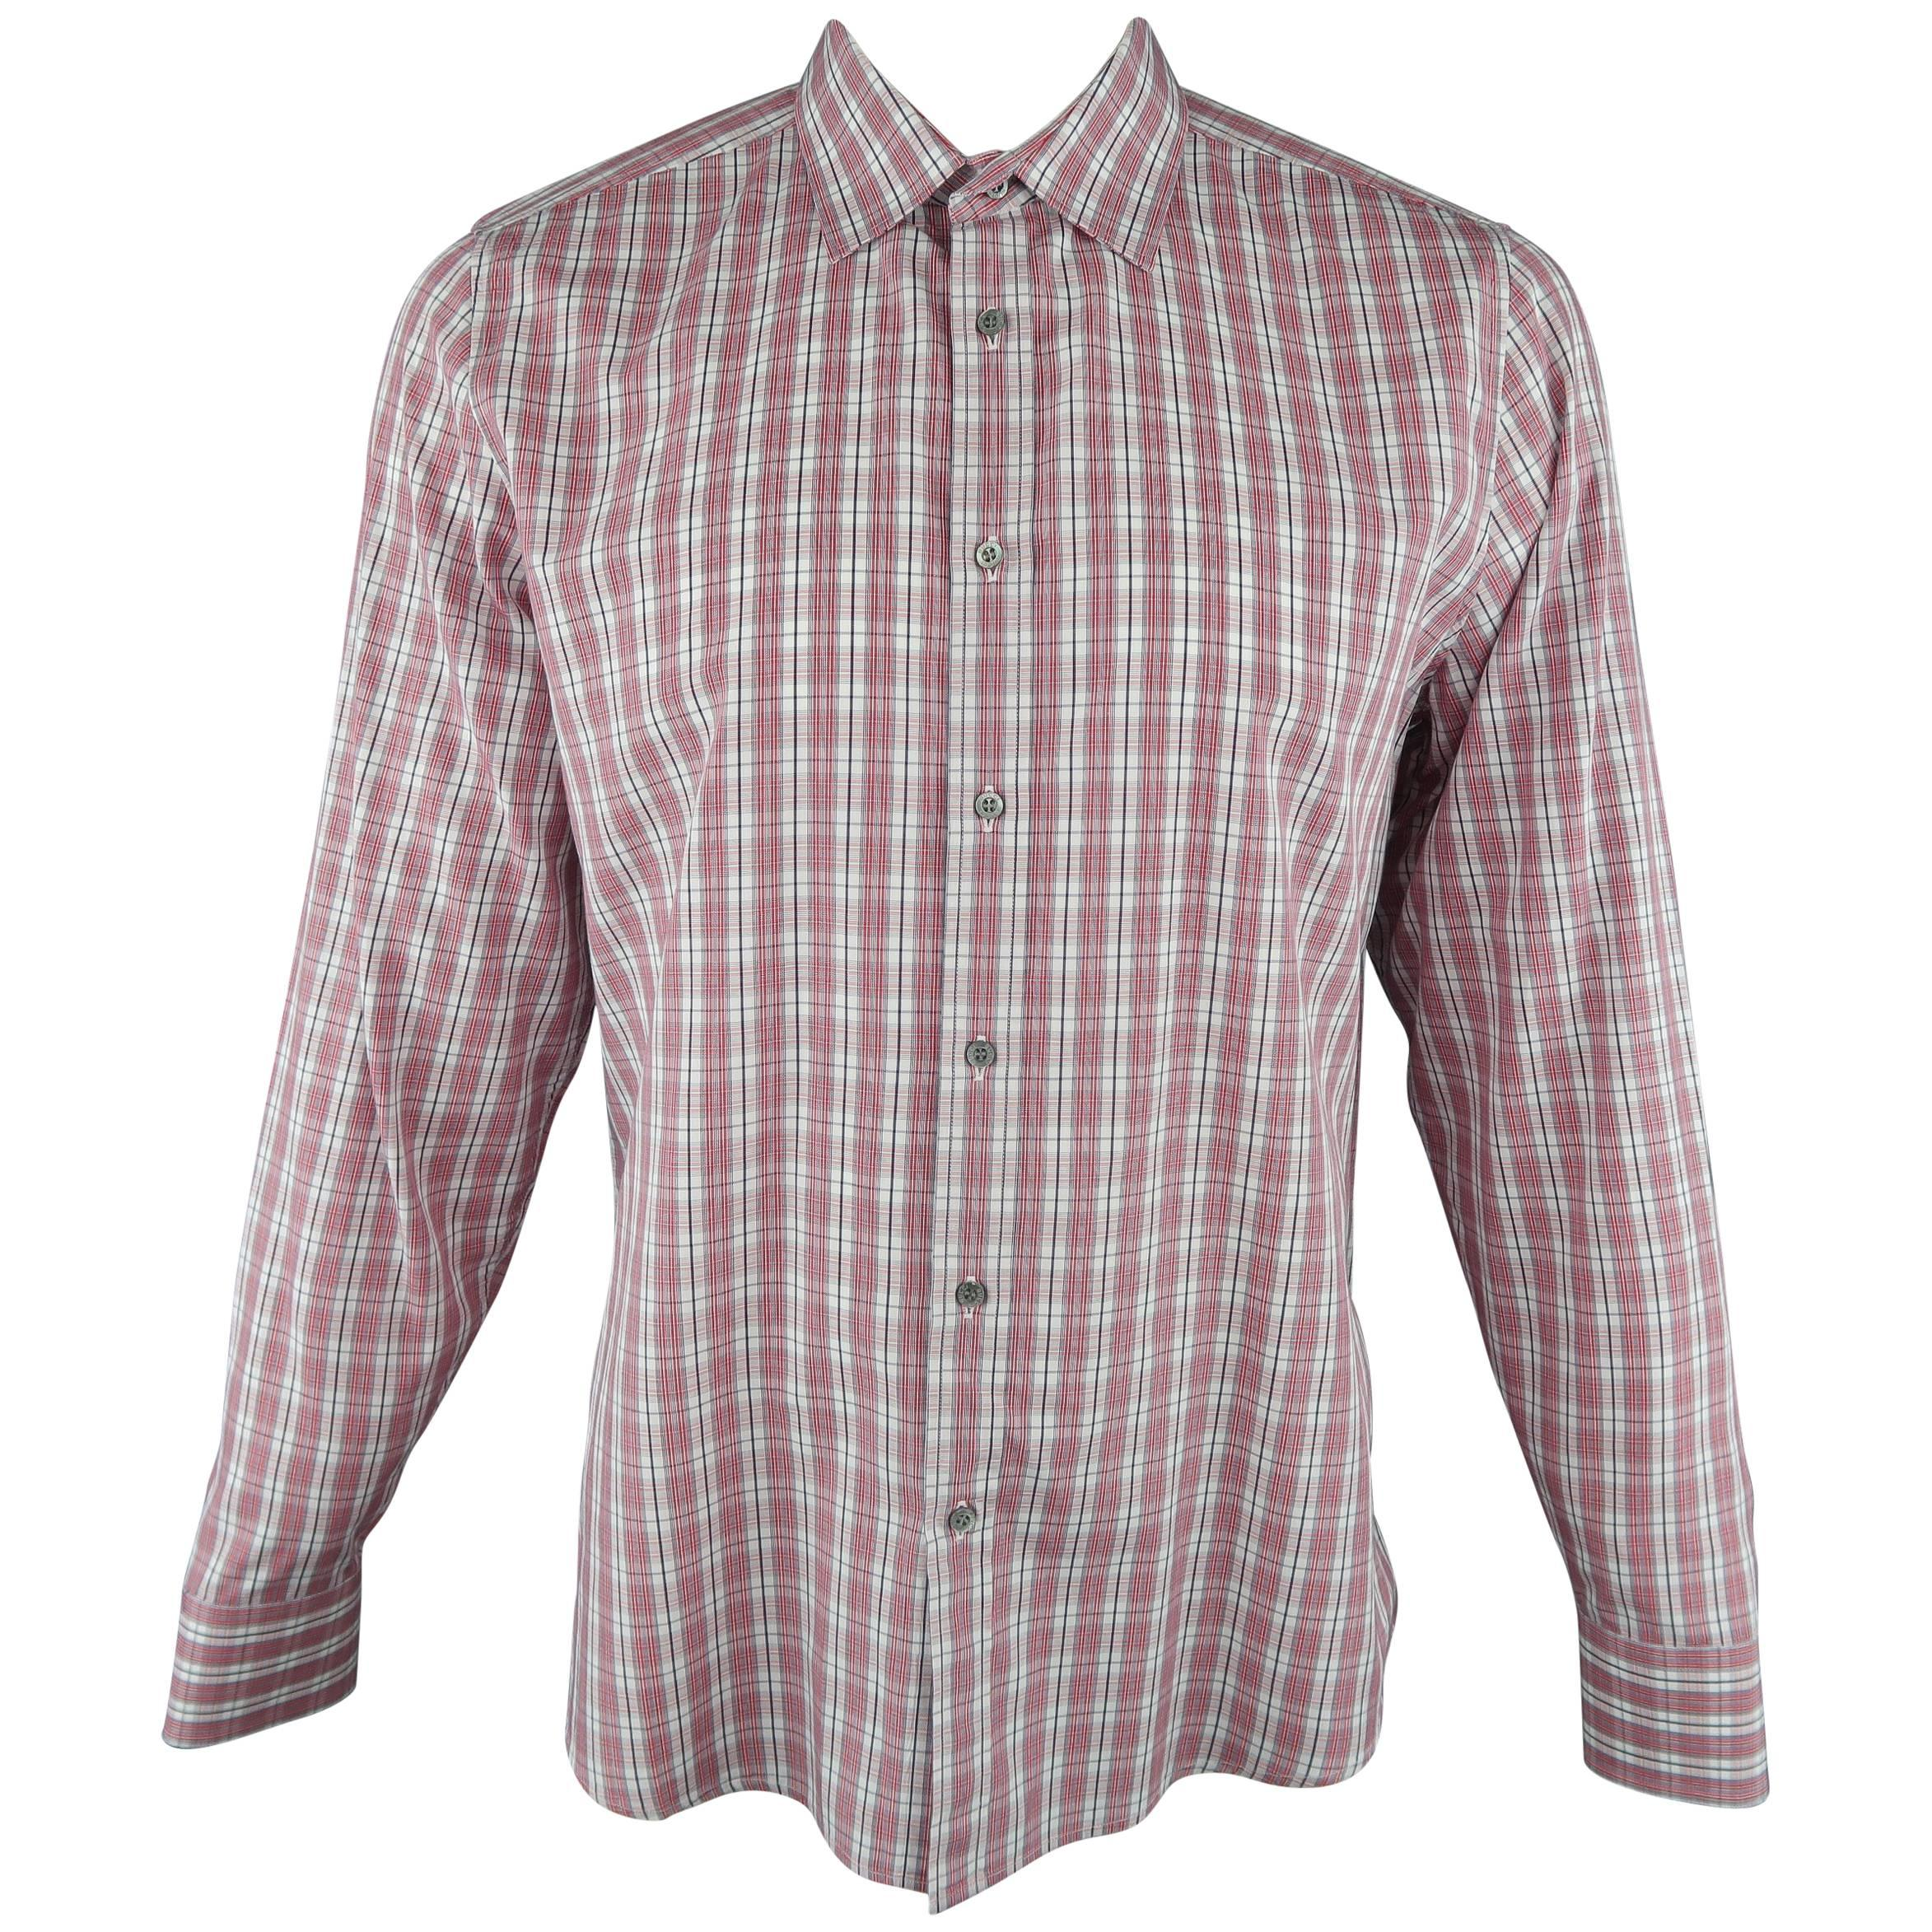 238cc8d68 Men's GUCCI Size XL Red and White Plaid Cotton Long Sleeve Slim Dress Shirt  For Sale at 1stdibs